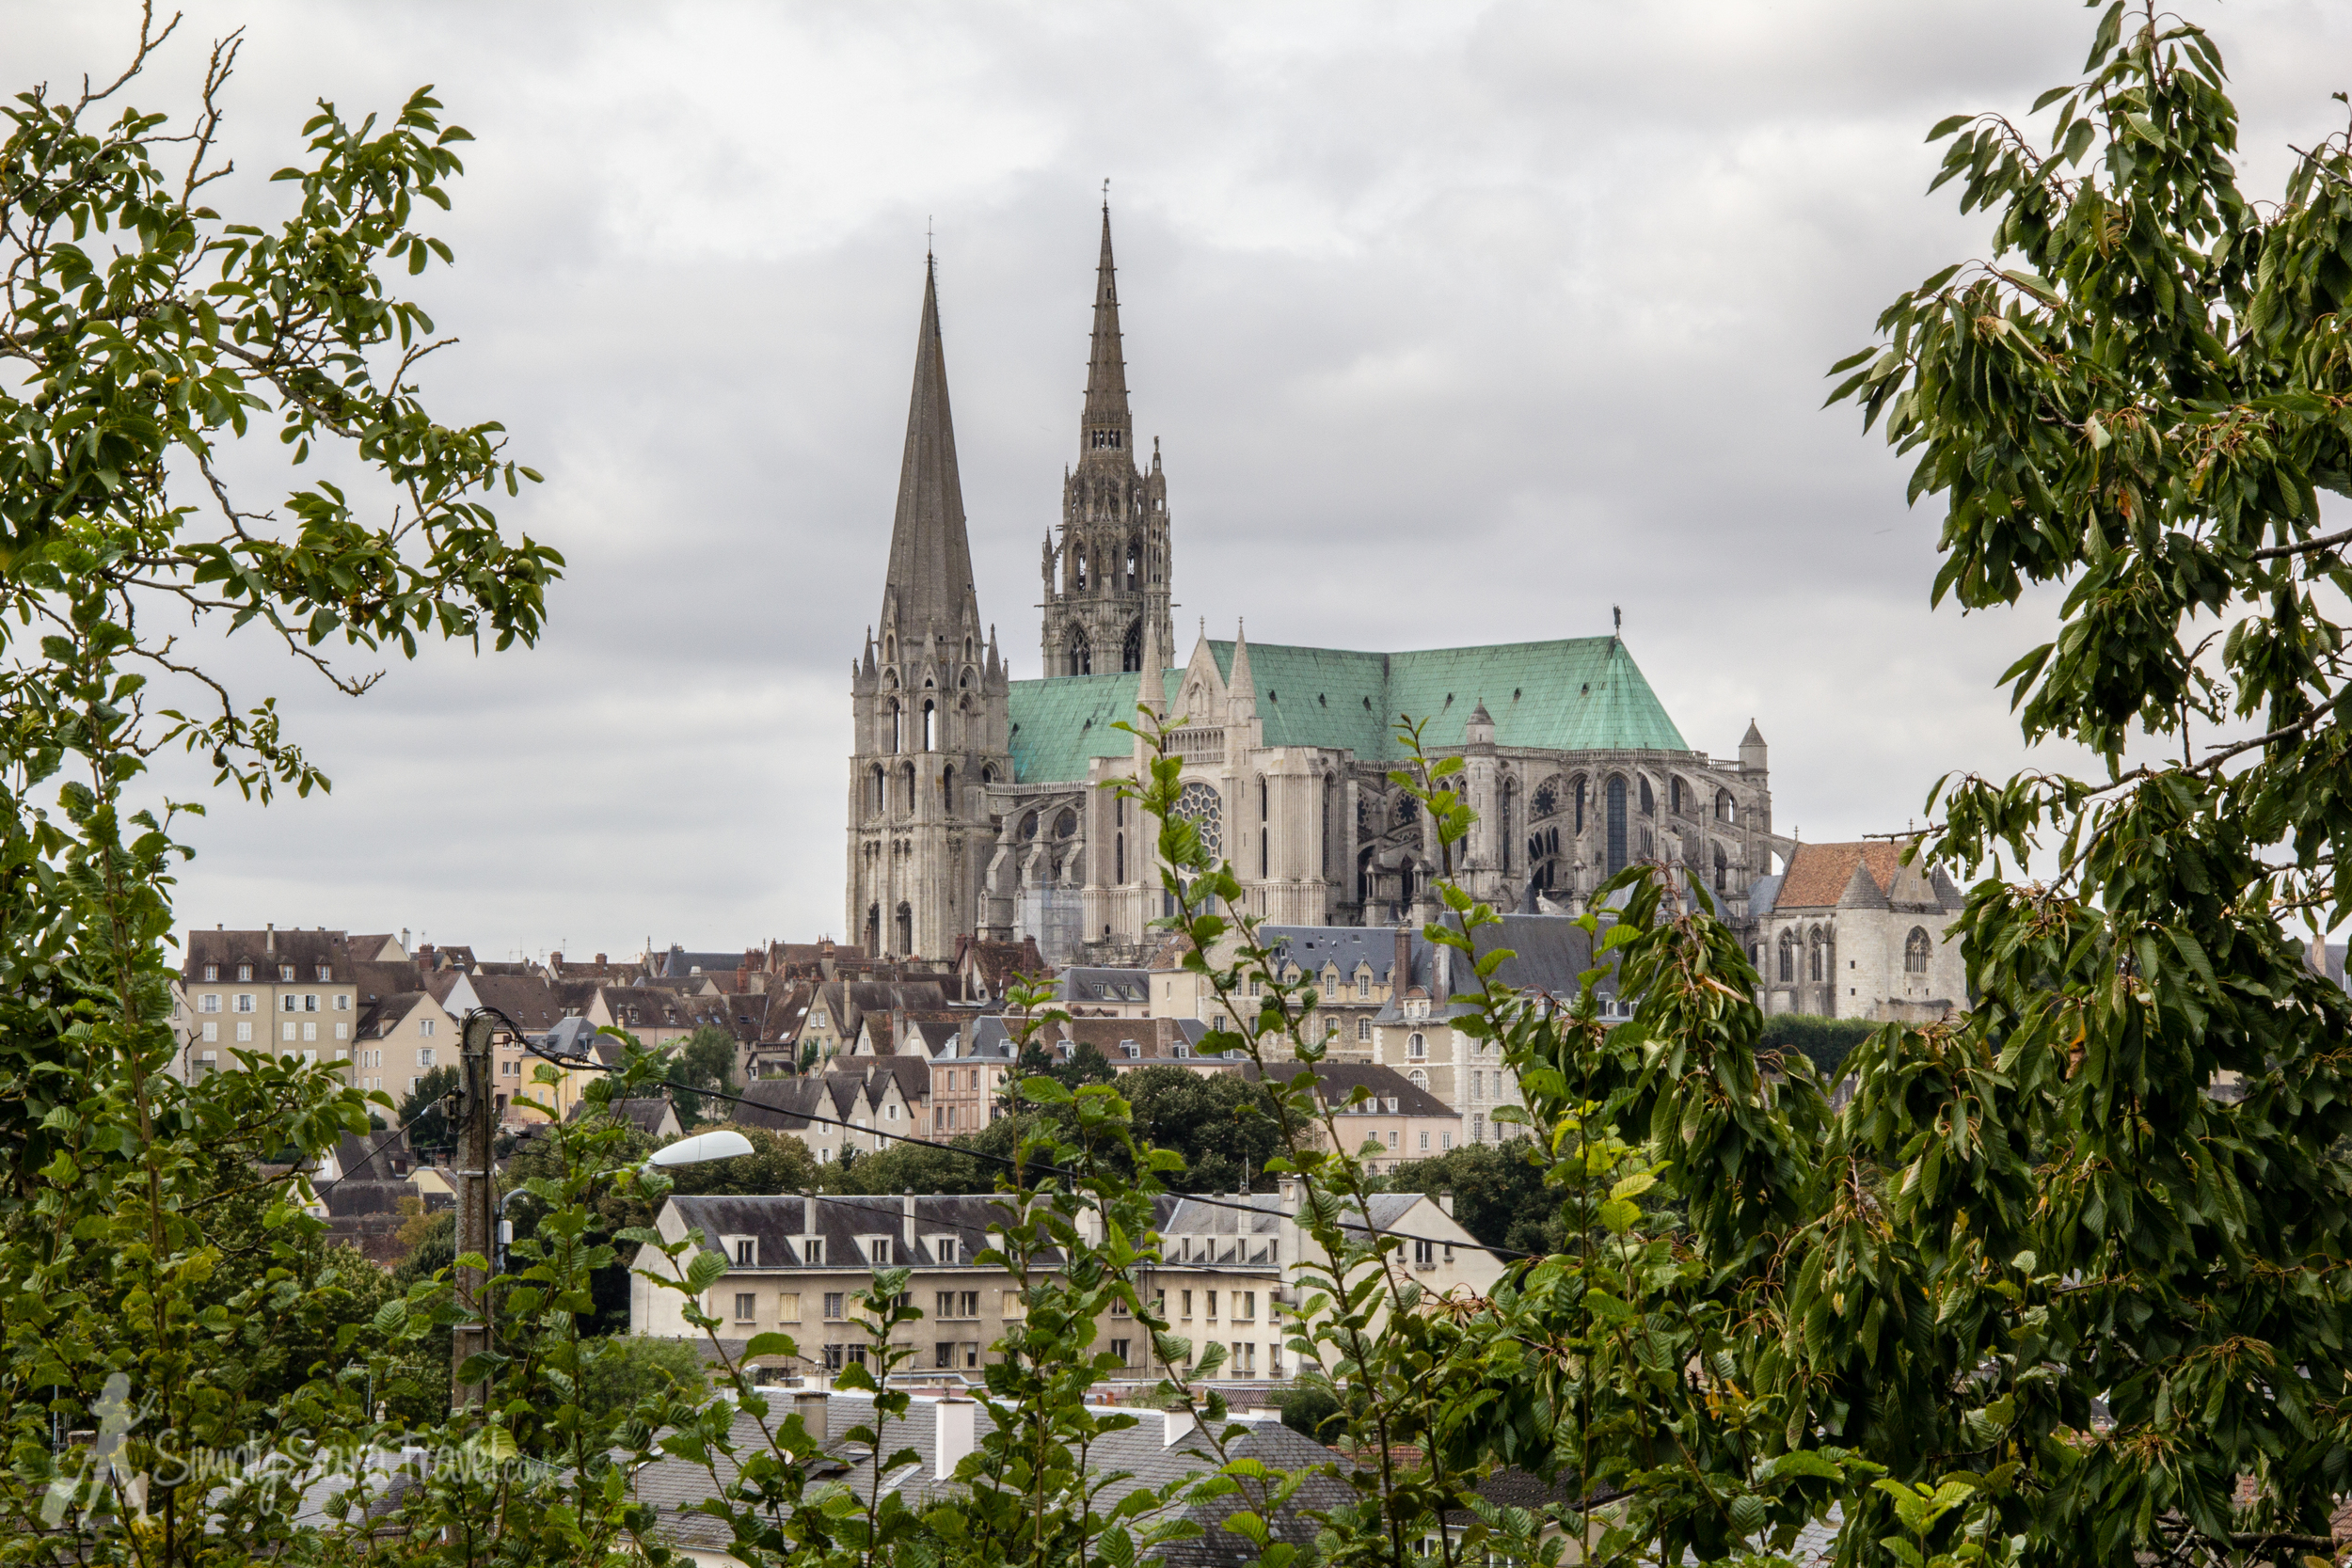 This is pretty much the only view we got in theJardin de Sakurai - a nice one, but keep moving on for a better spot. Especially considering that the garden itself isn't really anything special to see, so all it has to offer is this viewpoint of the church.